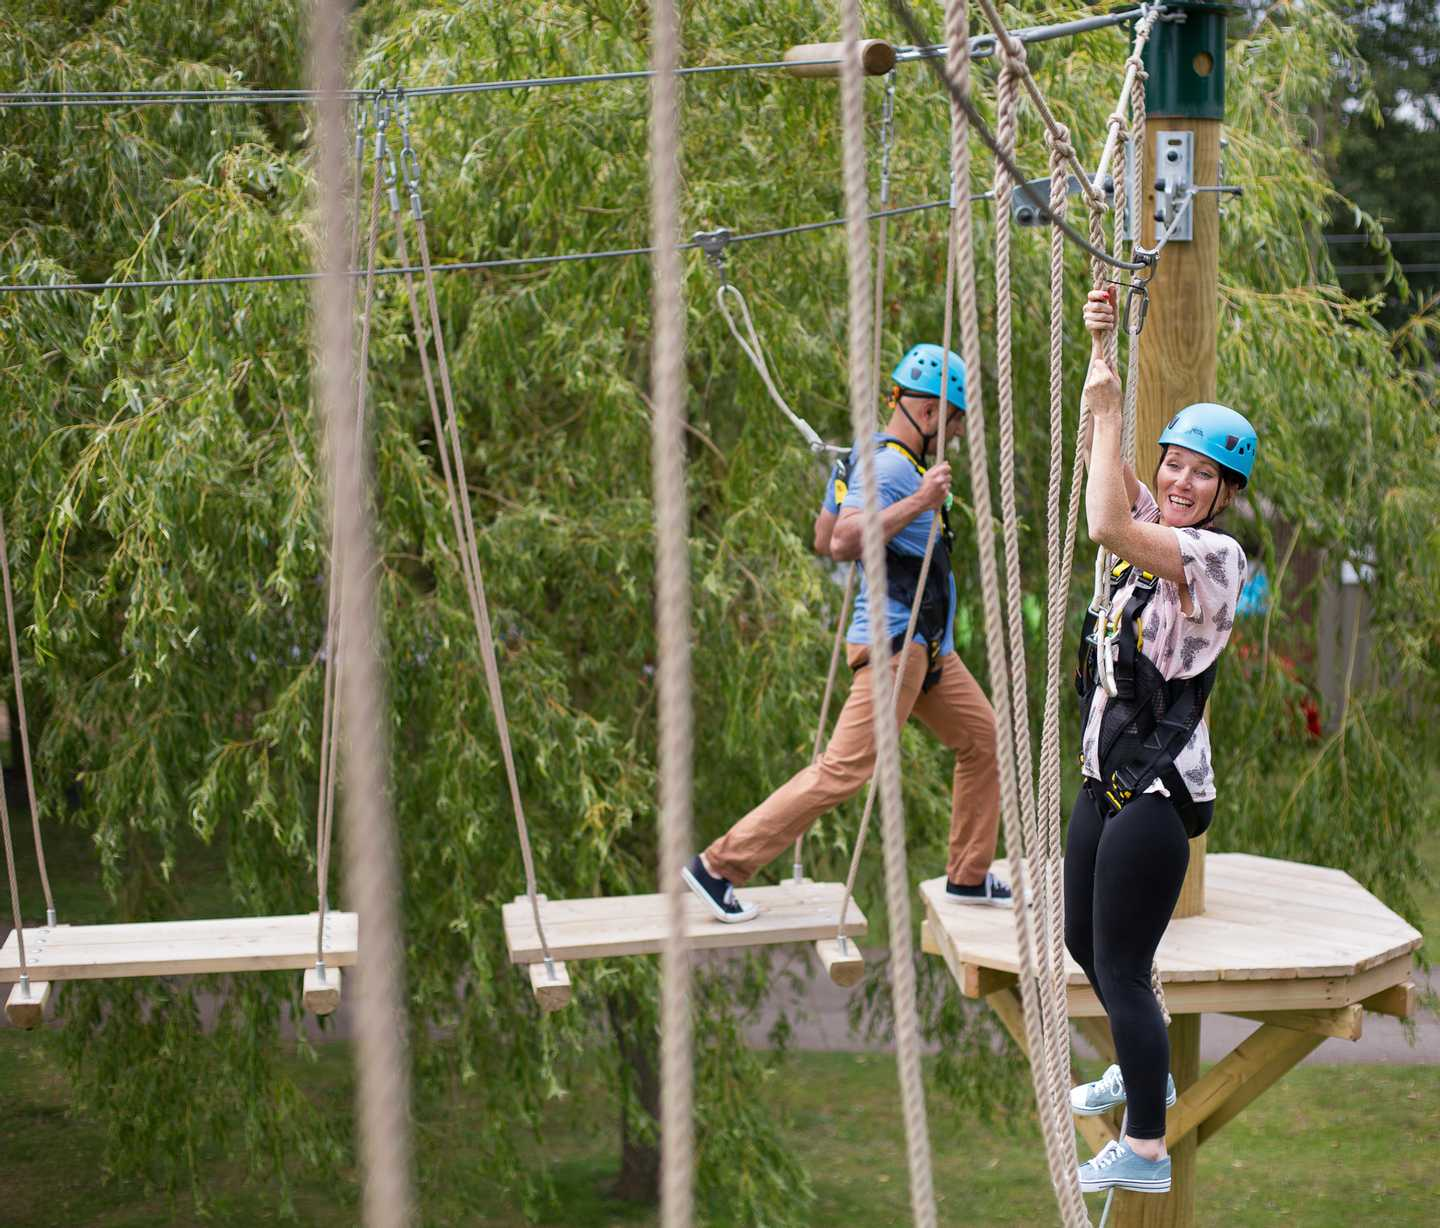 Guests attempting the Aerial Adventure course